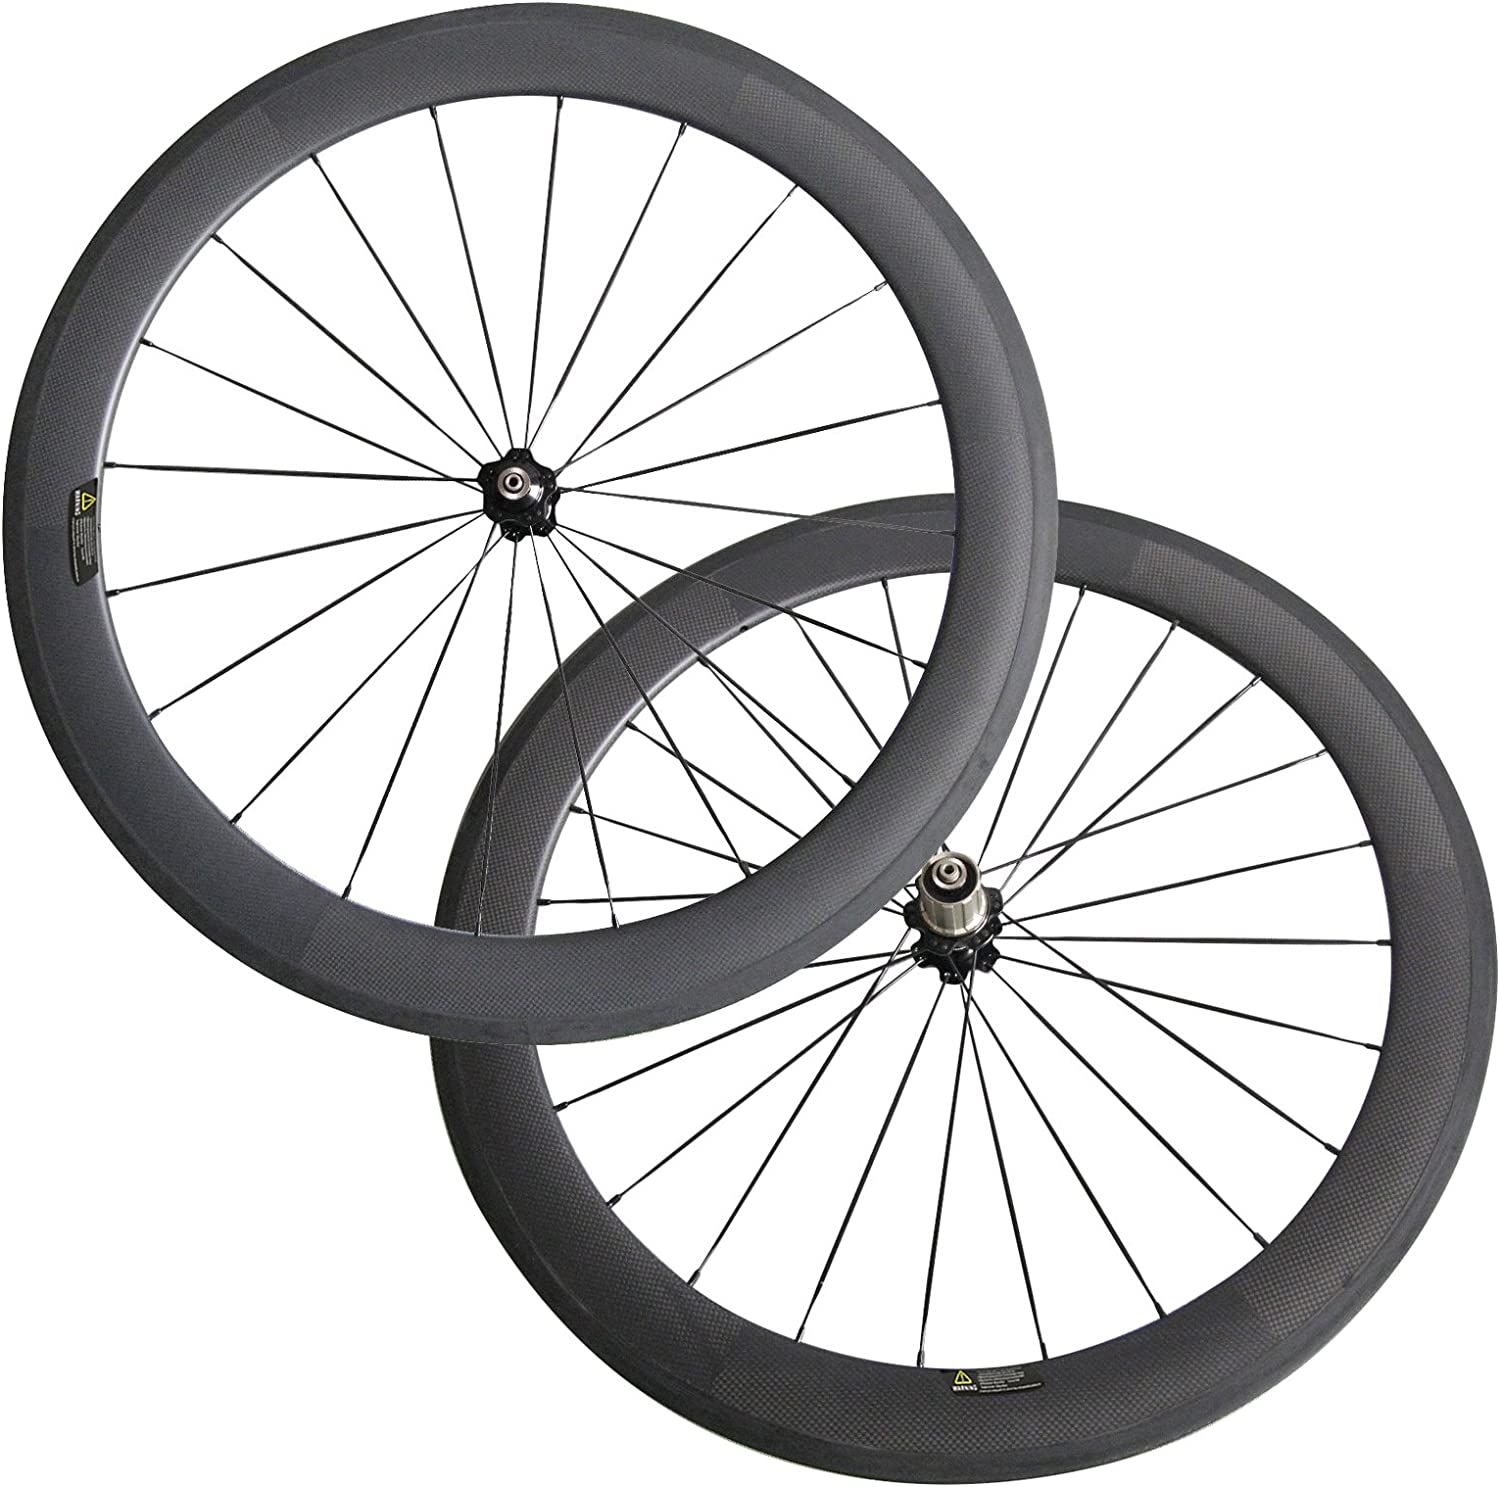 LOLTRA 60mm Clincher 23mm Width Carbon Wheelset Carbon Fiber Bike Wheels